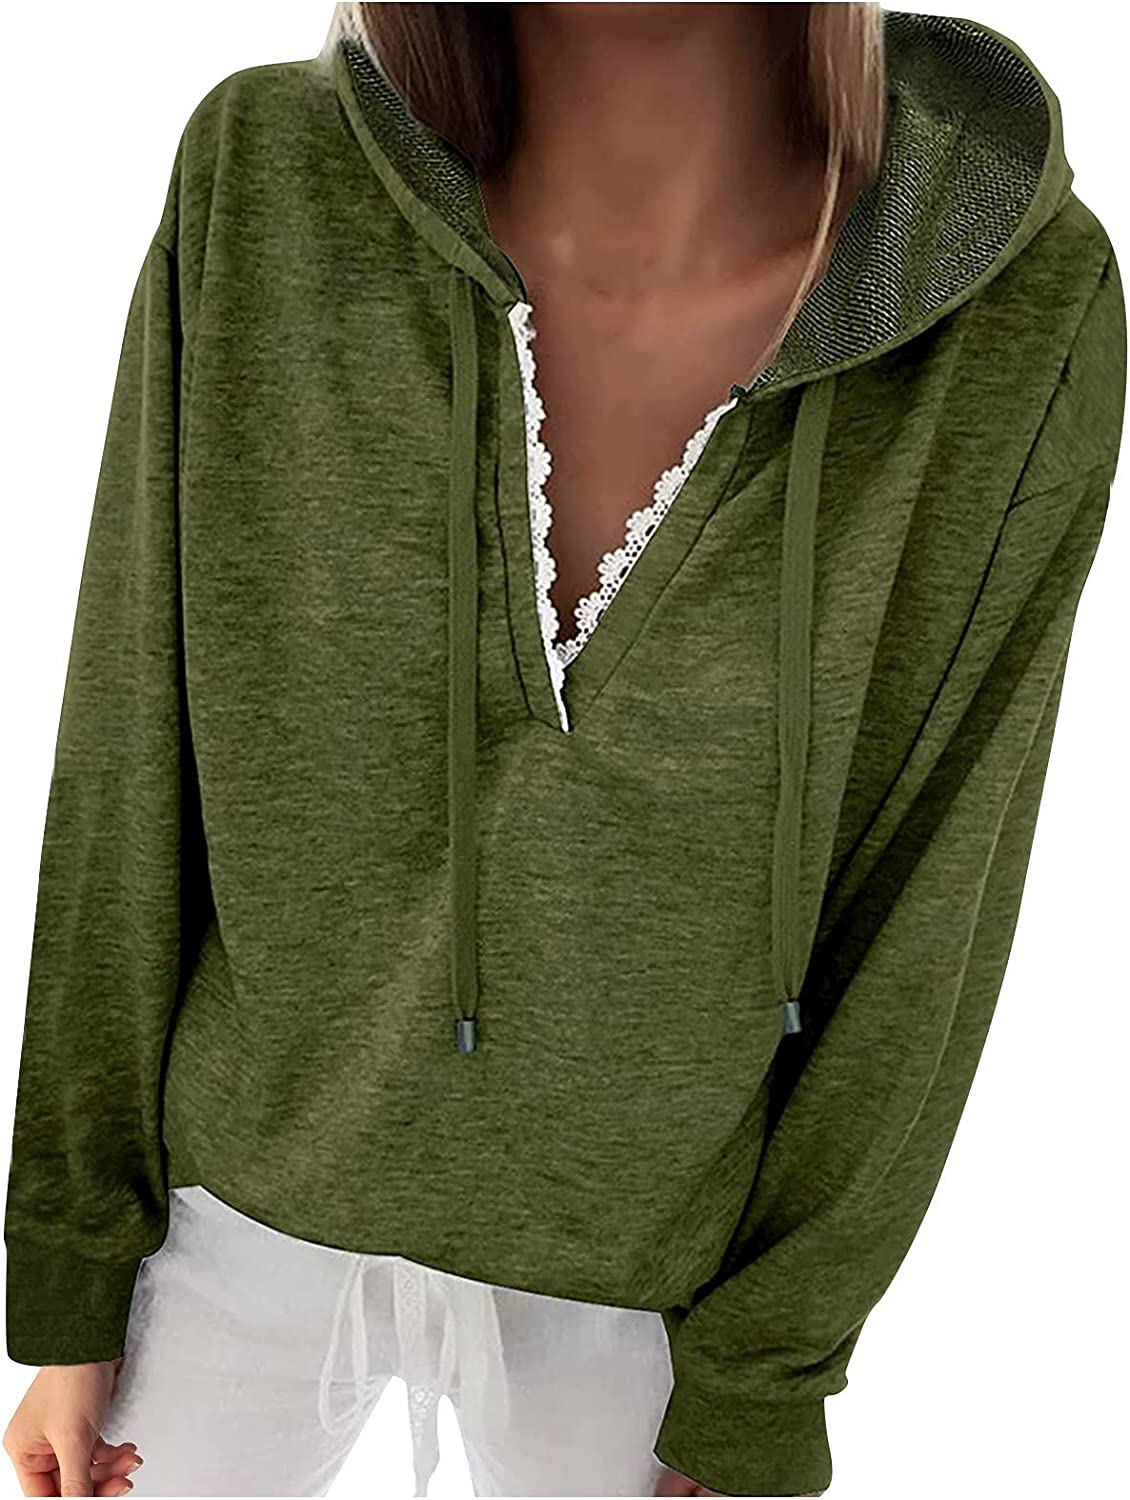 Super special Special price for a limited time price KOPLTYRFG Womens Hooded Solid Color Pullover Do Lace Tops Casual